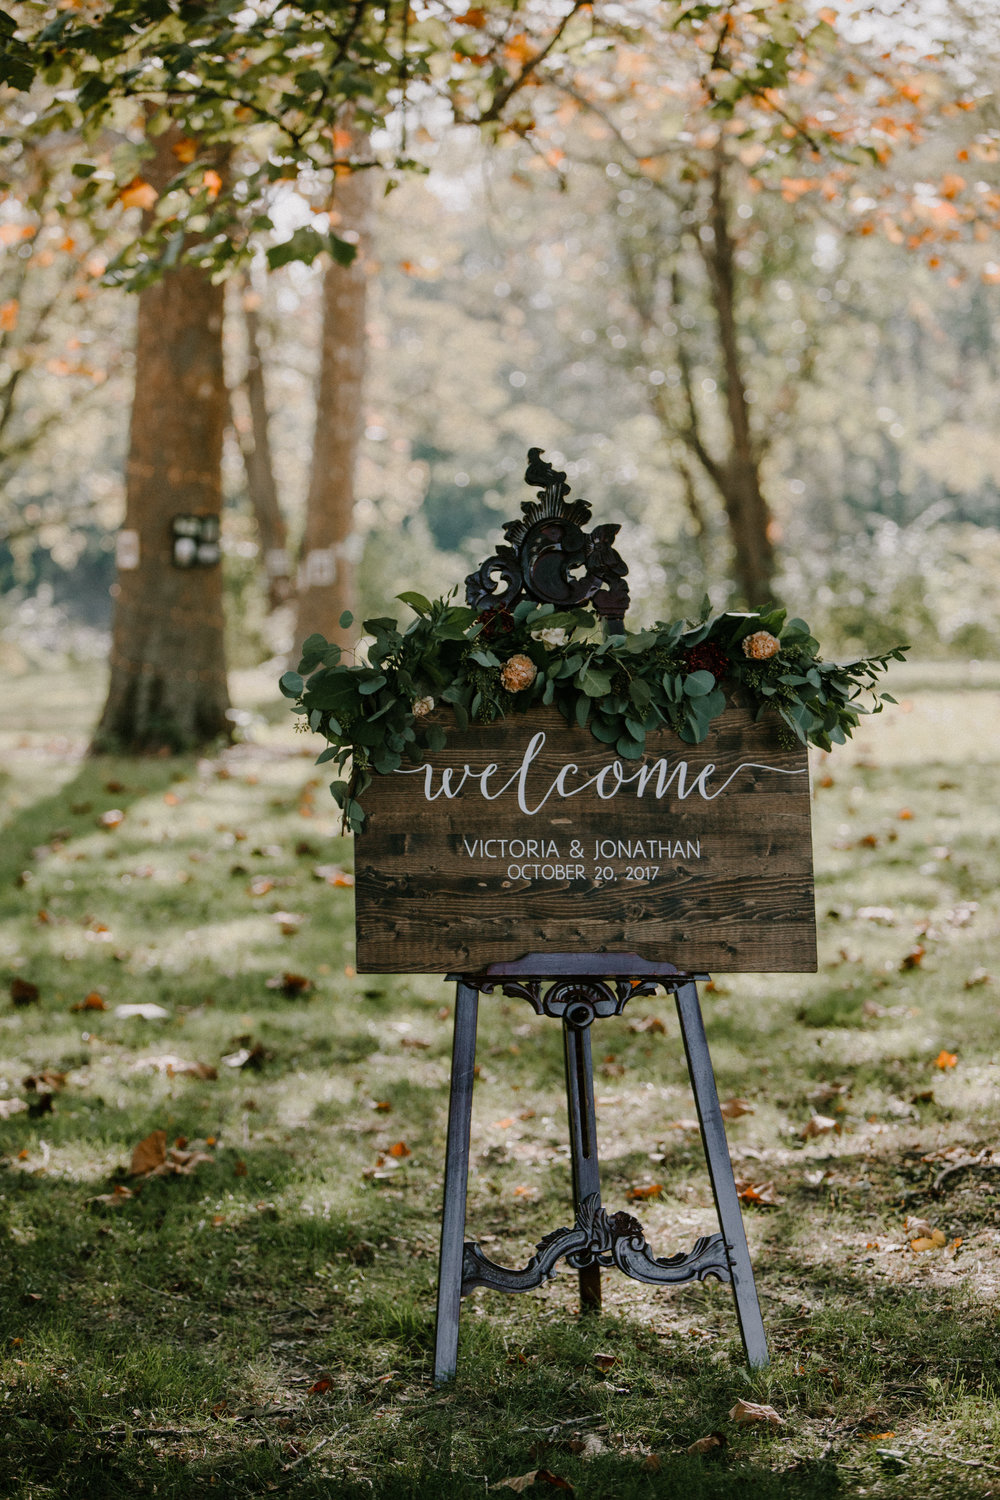 Victoria & Jon - Spruce Rentals, Meredith Washburn Photography, Pear Tree Estates, Pollen & Pastry, Embellish Lettering, Letters from Linds and more!